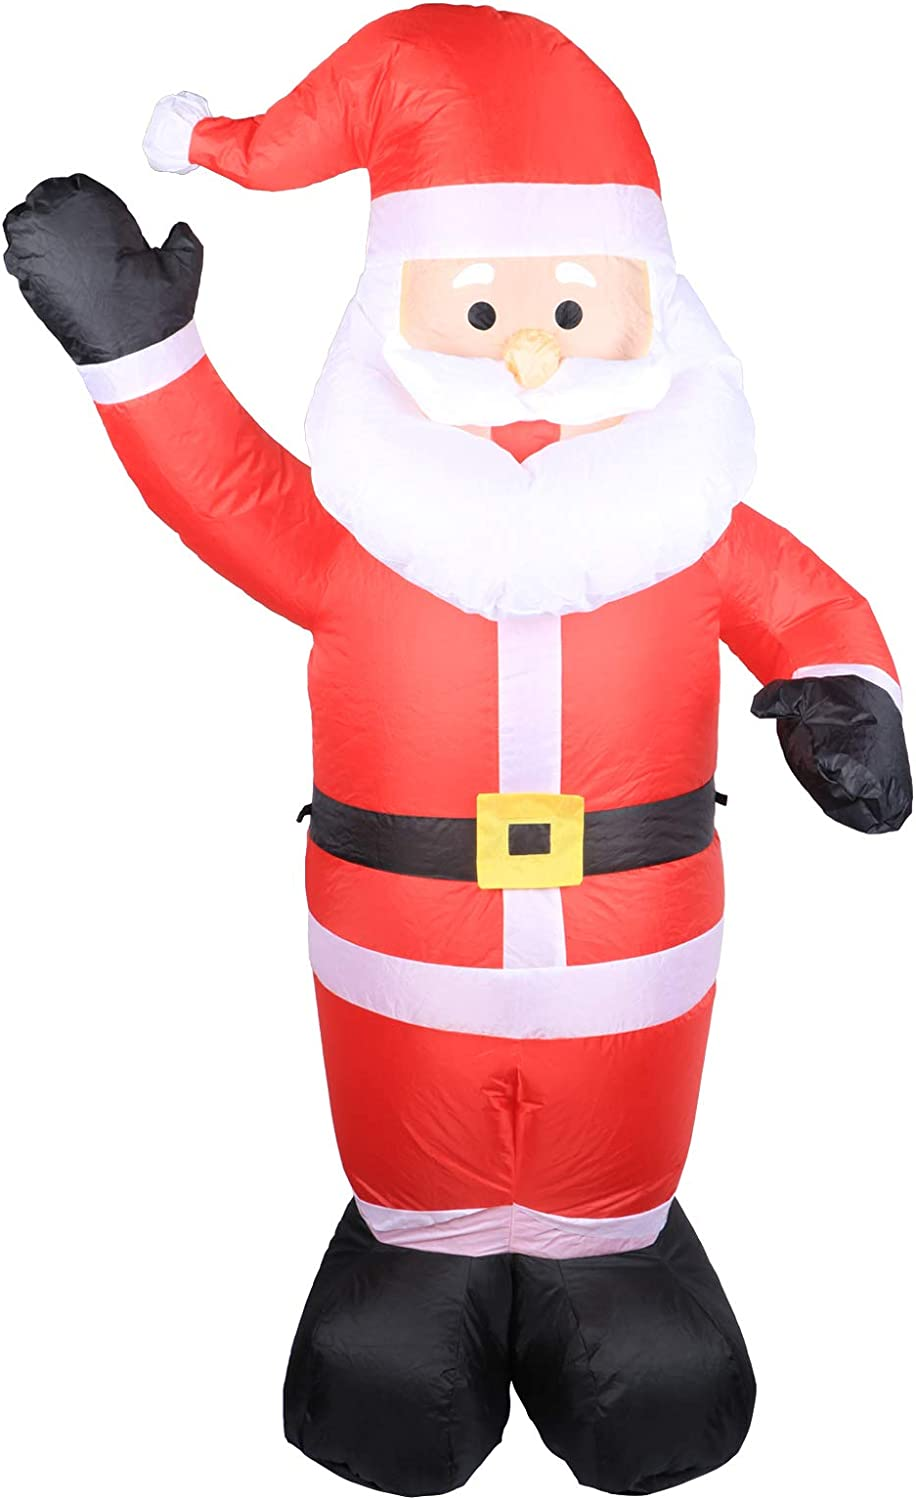 WONDER GARDEN Christmas Inflatable Model Santa Claus Inflatable Model Christmas Decoration